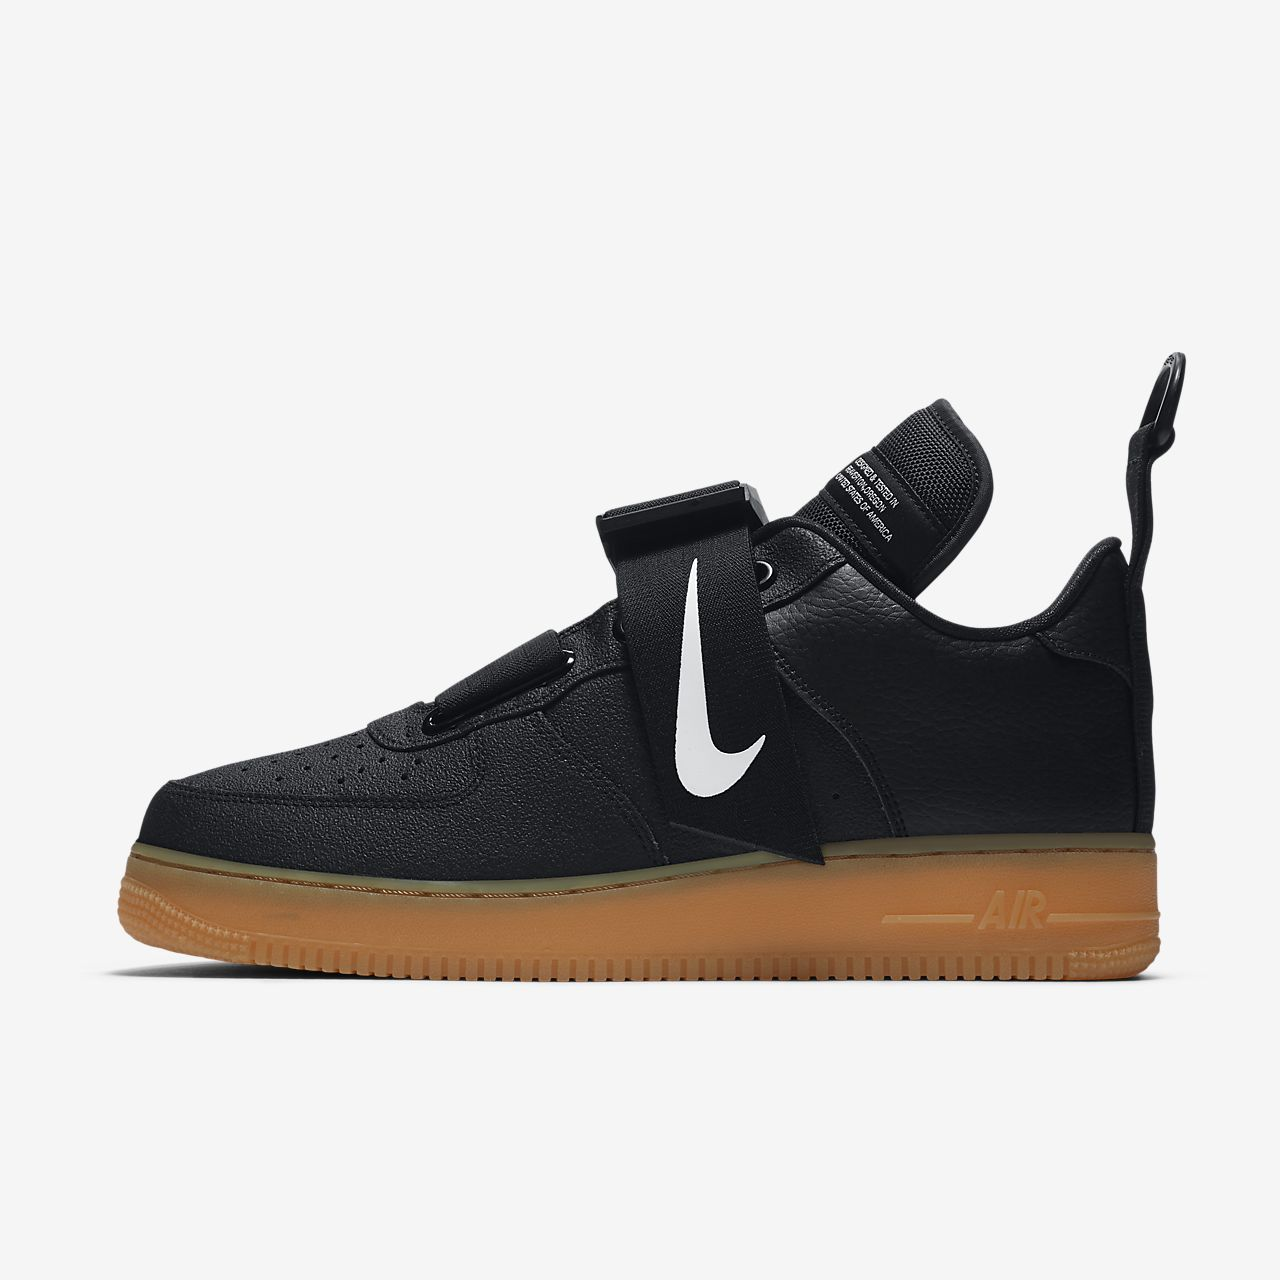 5ad05f2f10f Nike Air Force 1 Utility Men s Shoe. Nike.com ZA